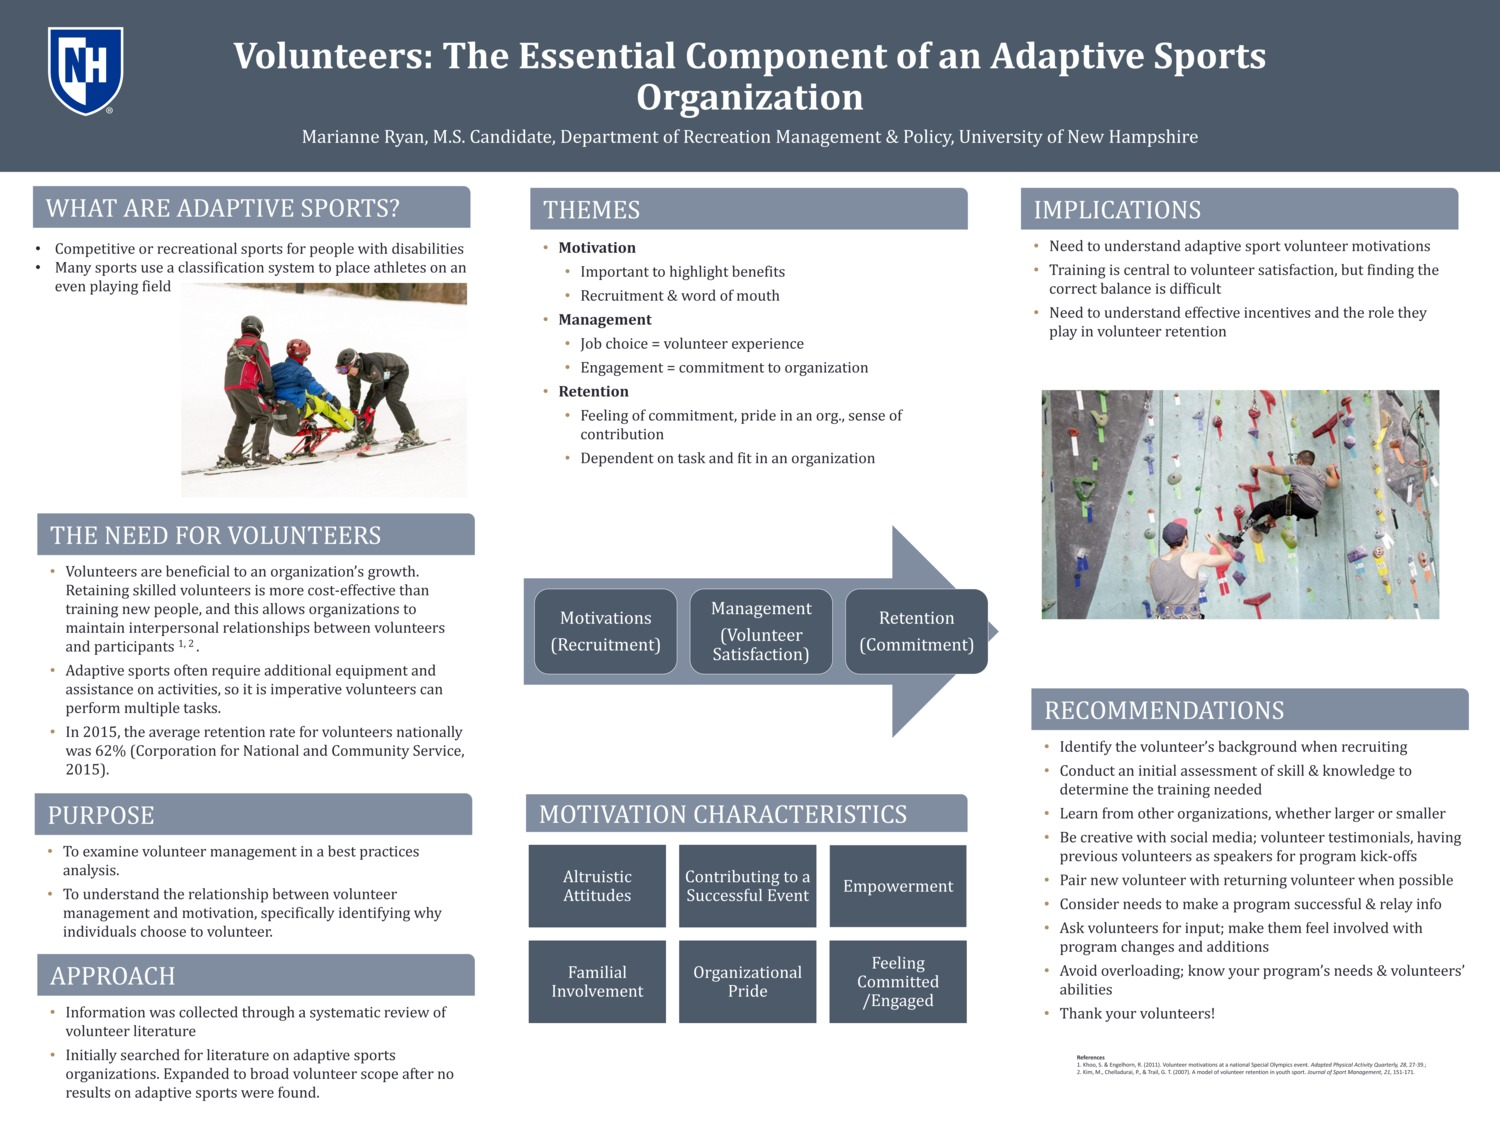 Volunteers: The Essential Component Of An Adaptive Sports Organization by mfr1003